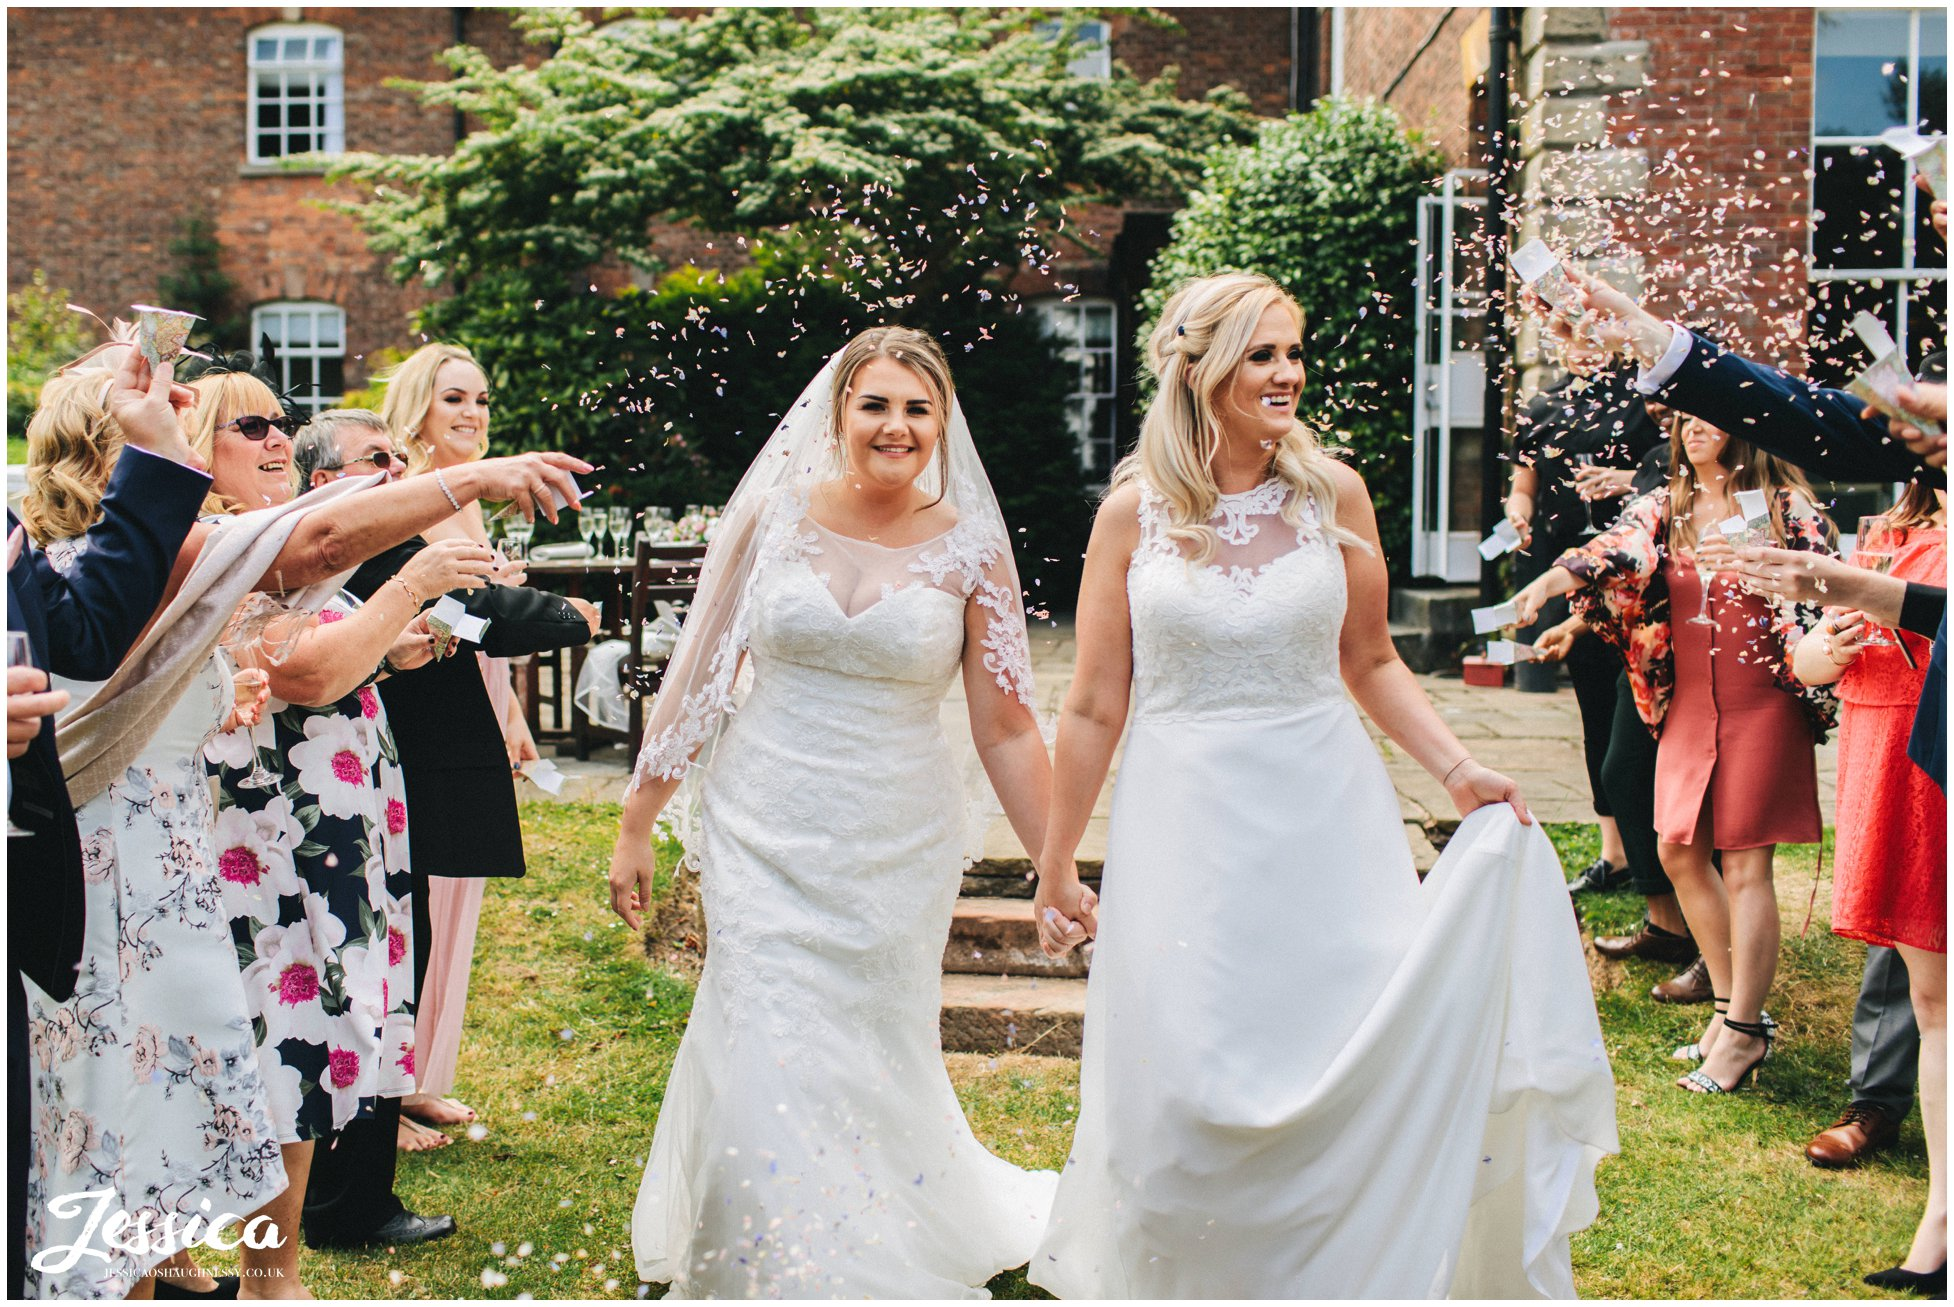 guests throw confetti over the brides as they walk through